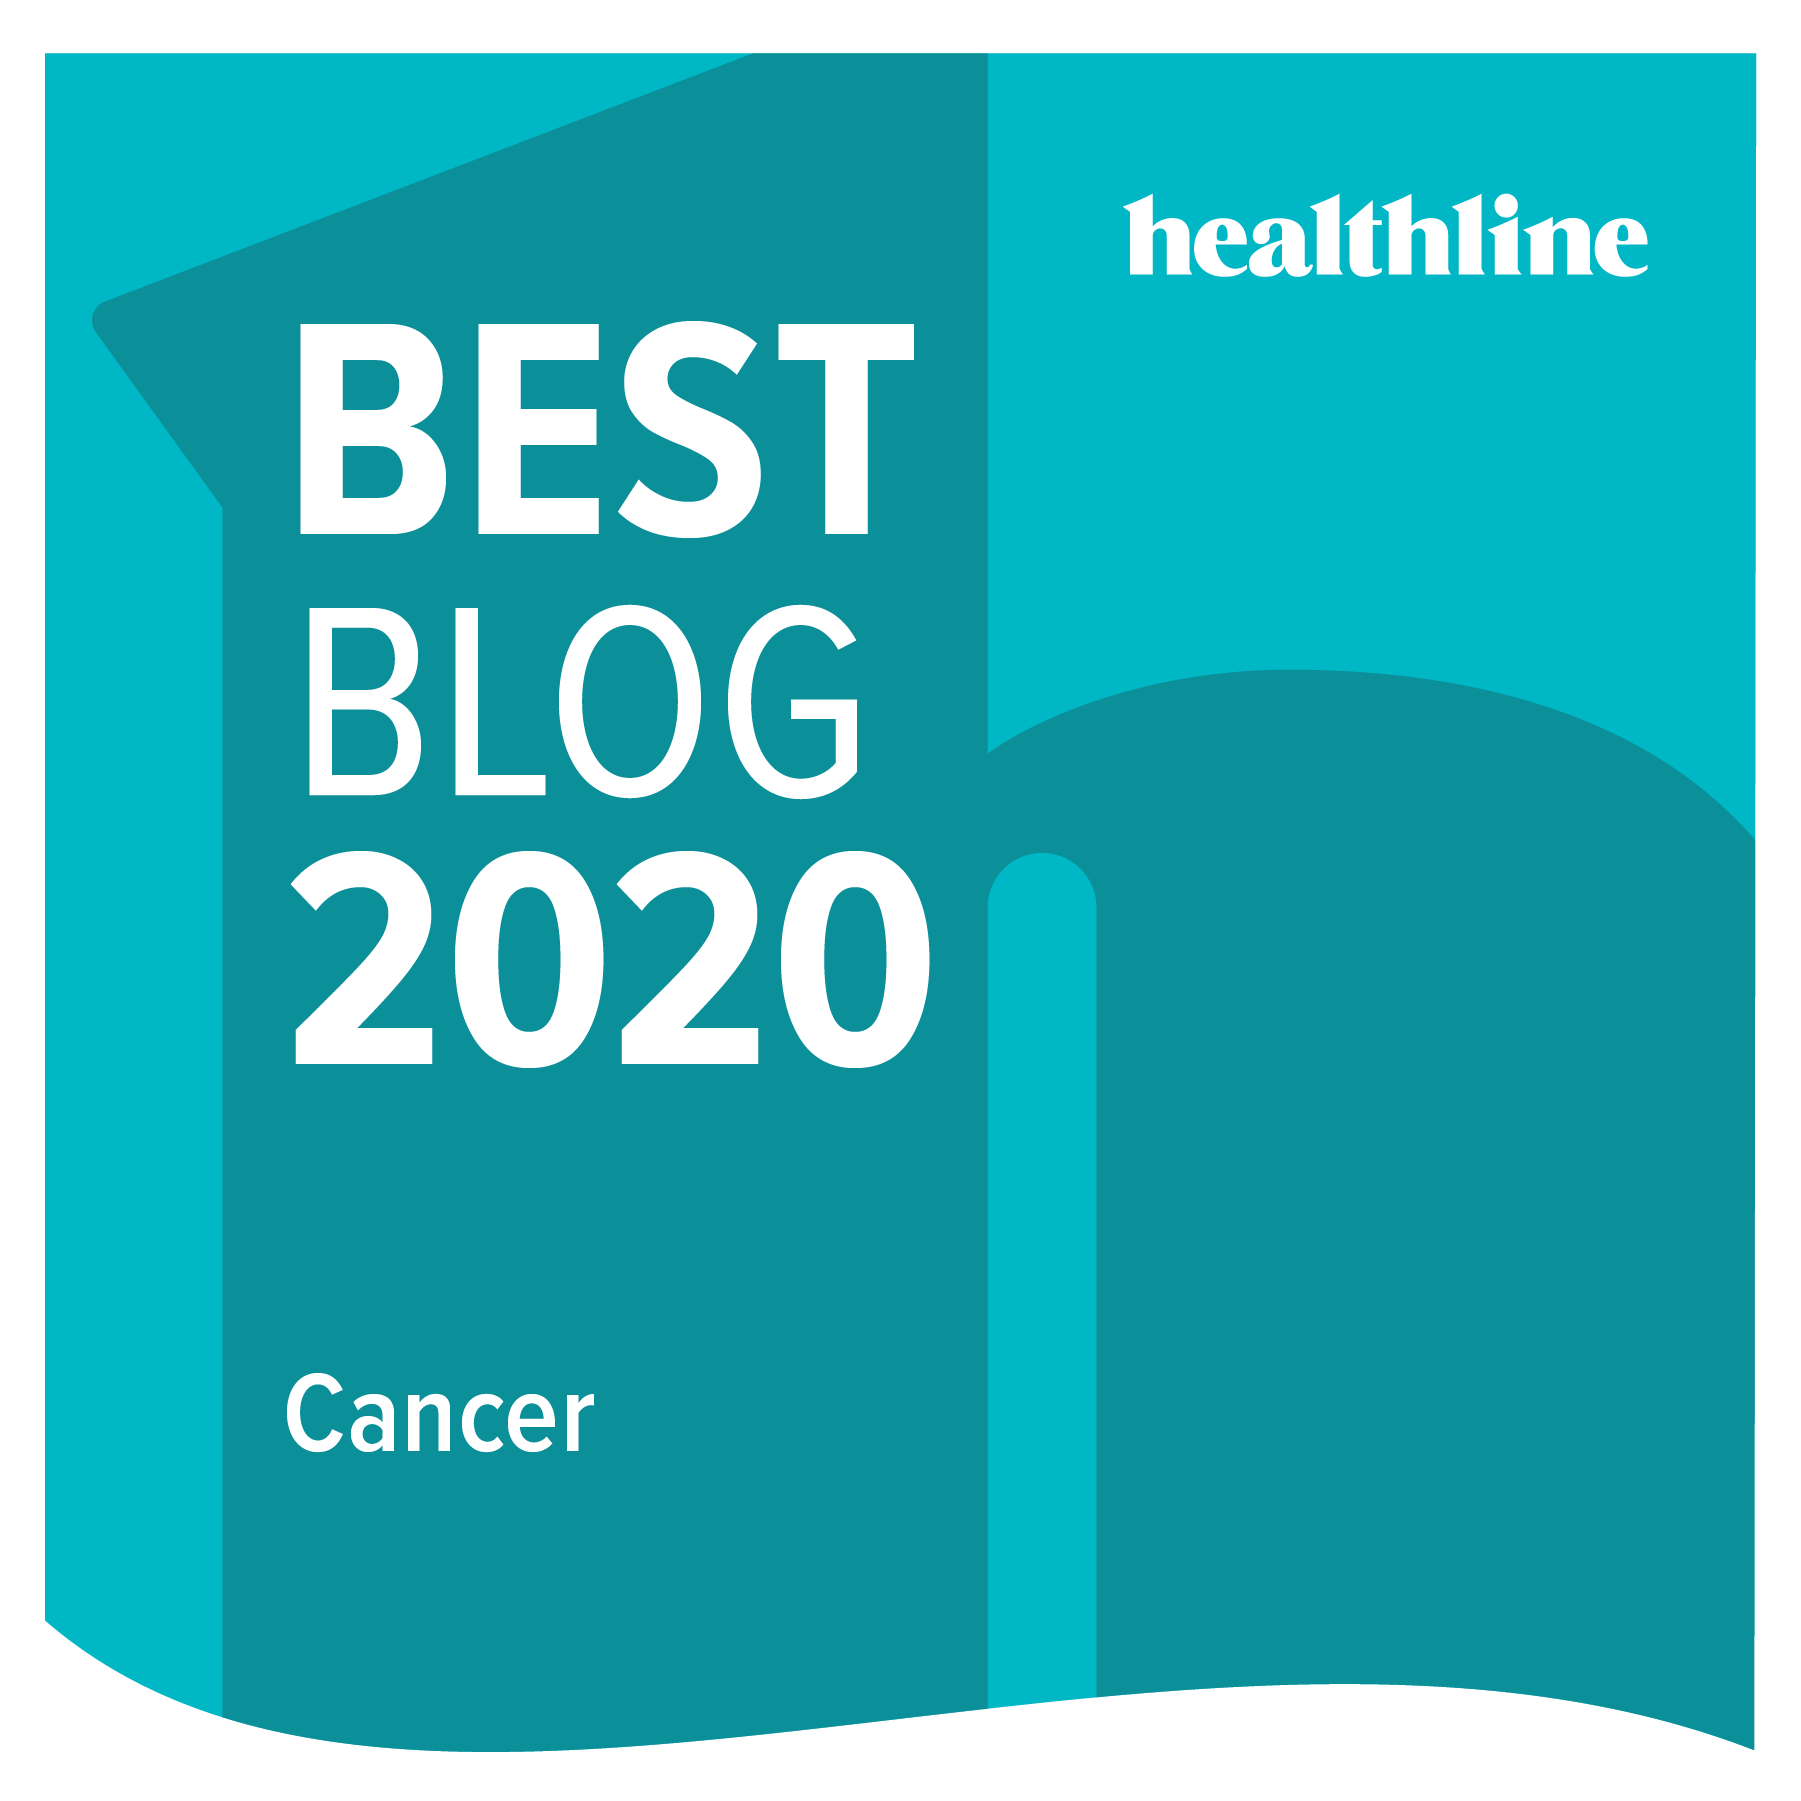 Healthline; Best Blog 2020: Cancer